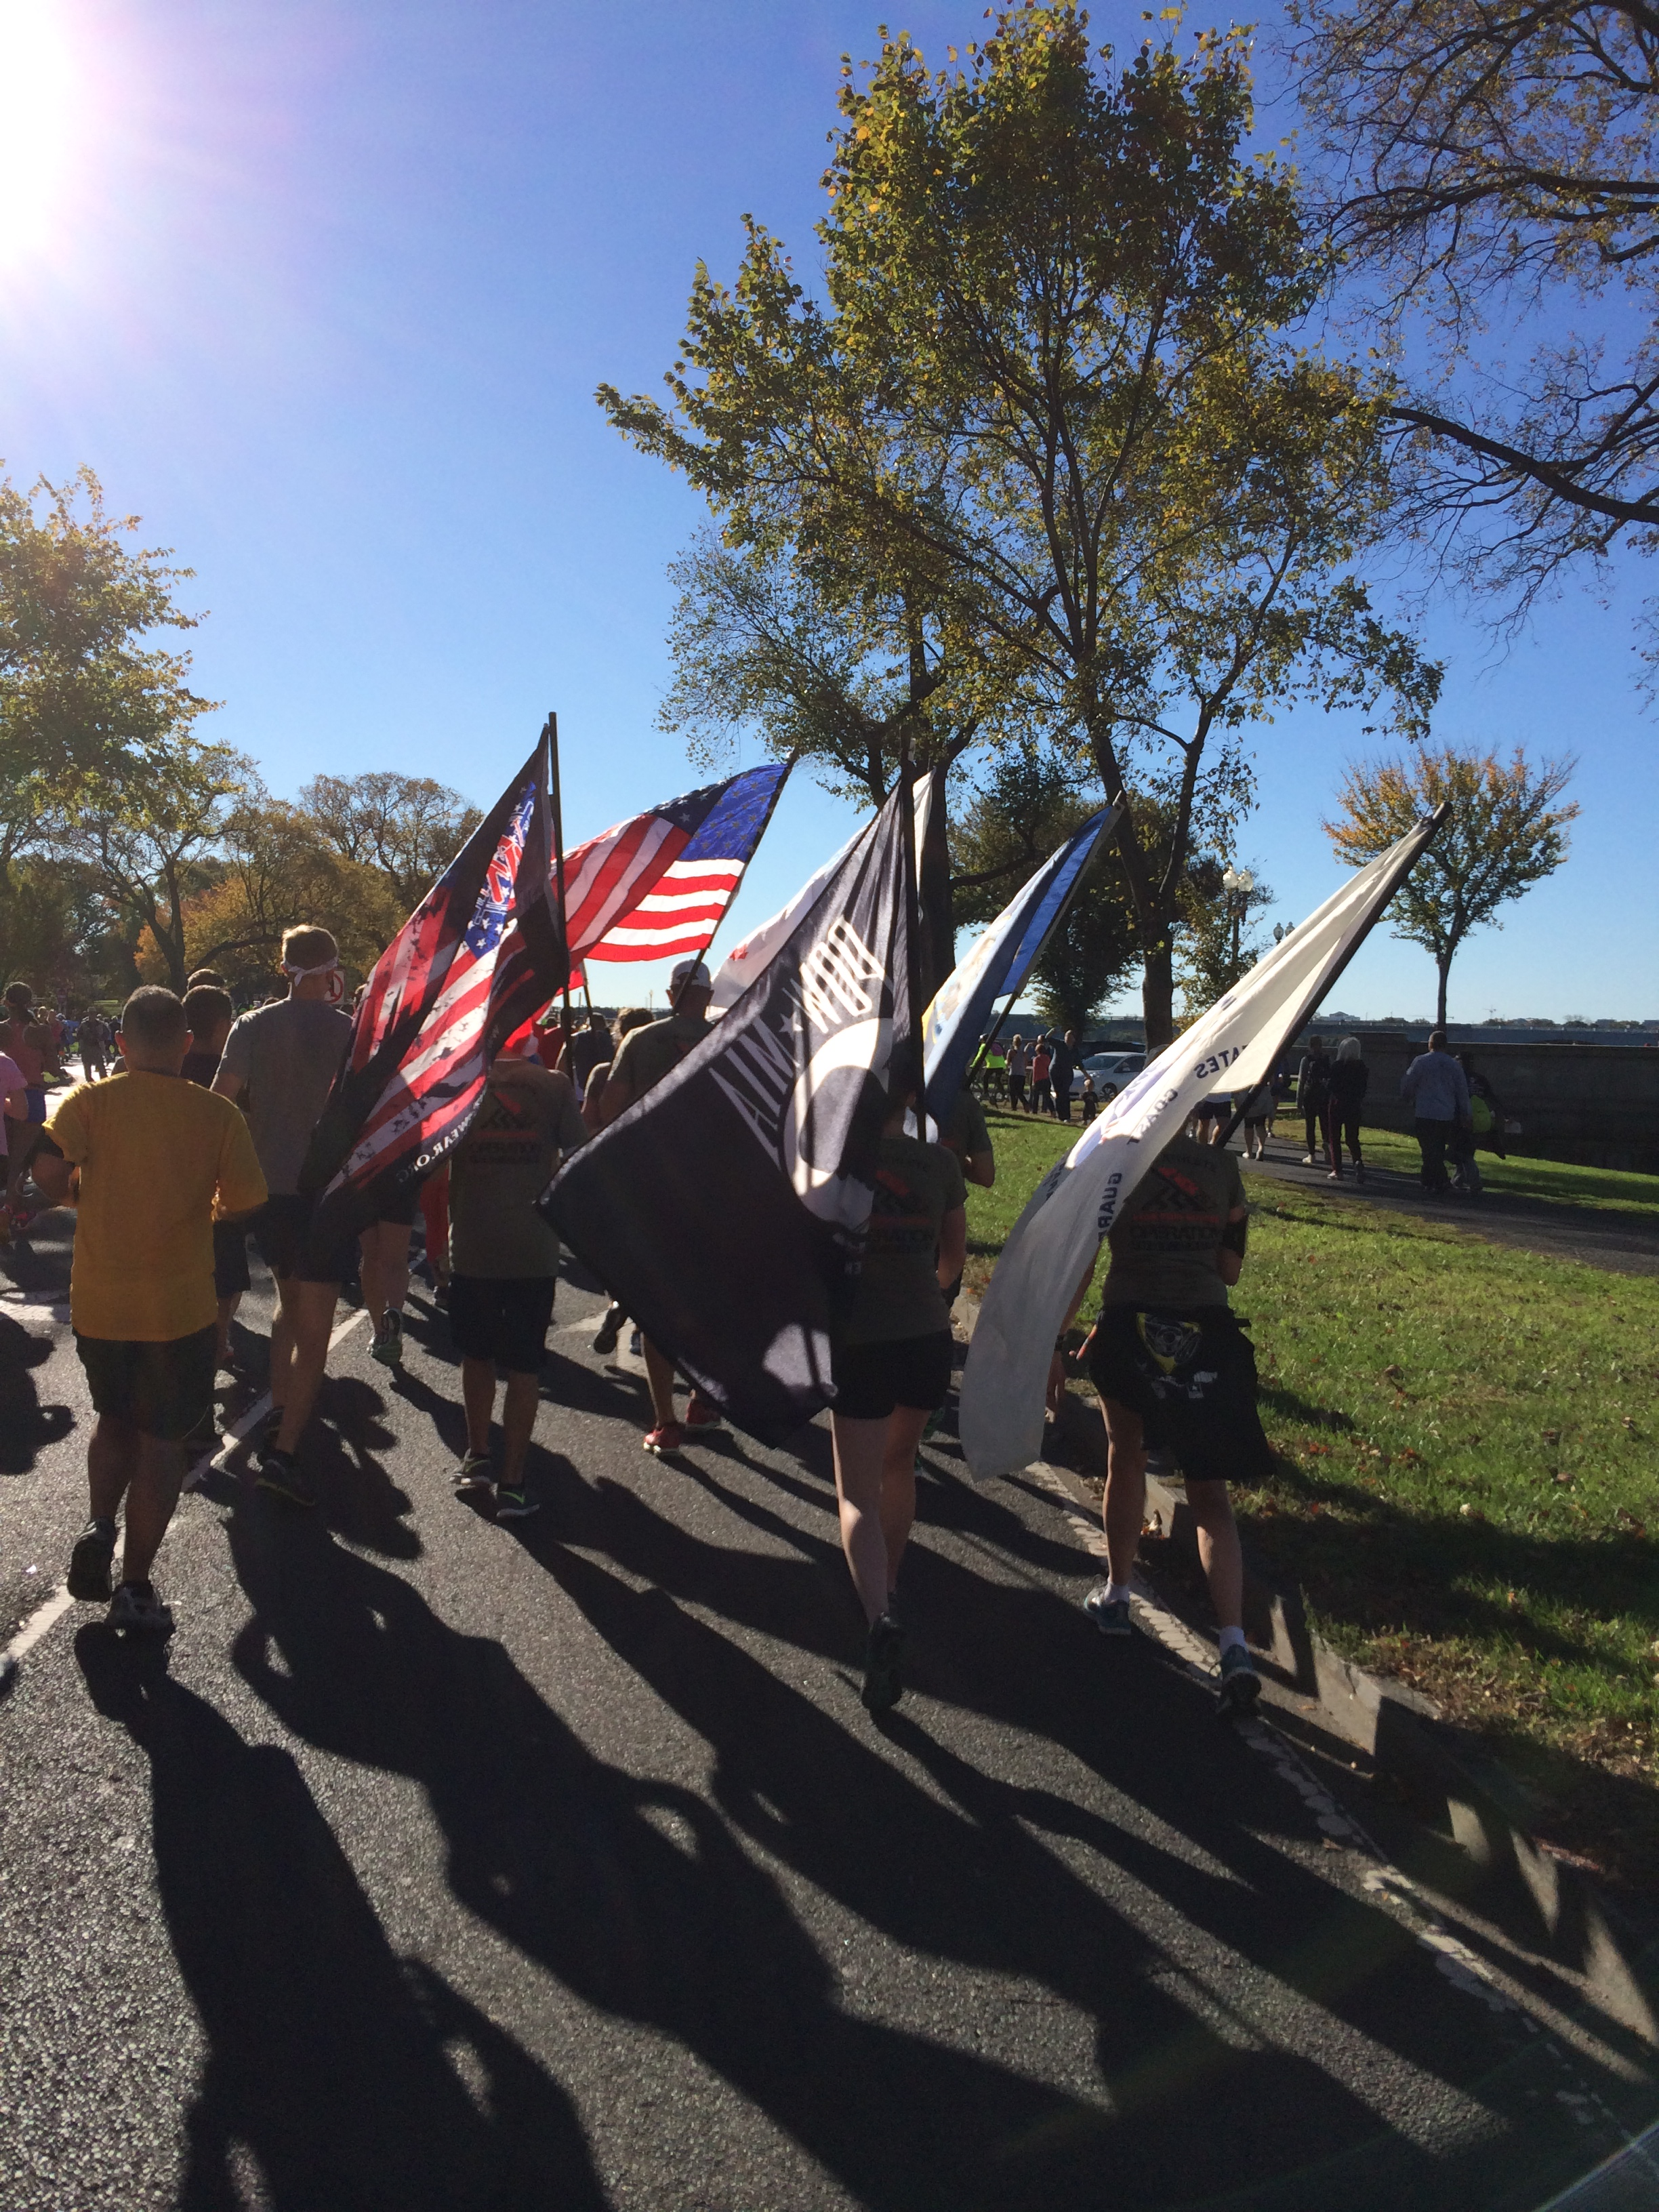 There were several groups like this that ran the whole course carrying flags